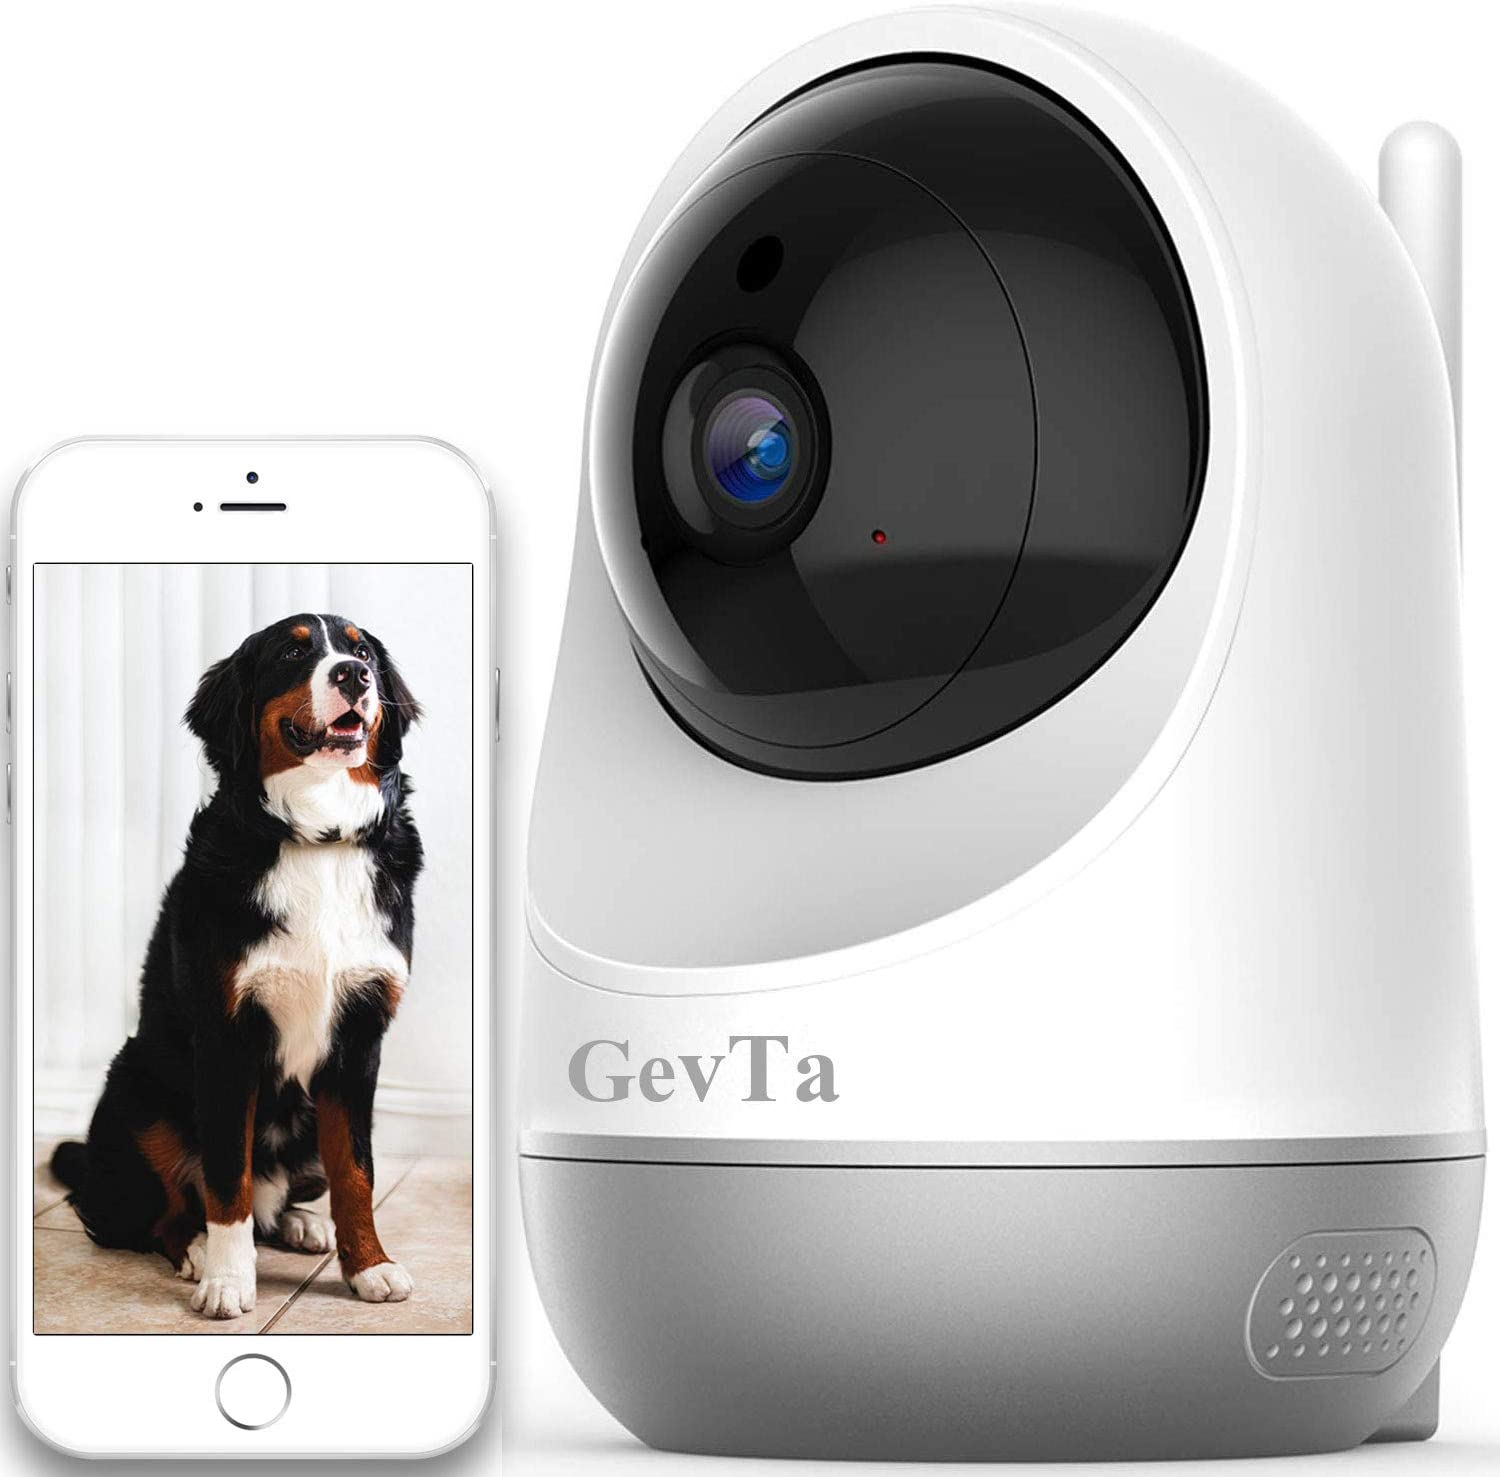 GevTa Pet Camera FHD Dog Camera WiFi Pet Monitor Indoor Cat Camera Night Vision 2 Way Audio and Motion Detection